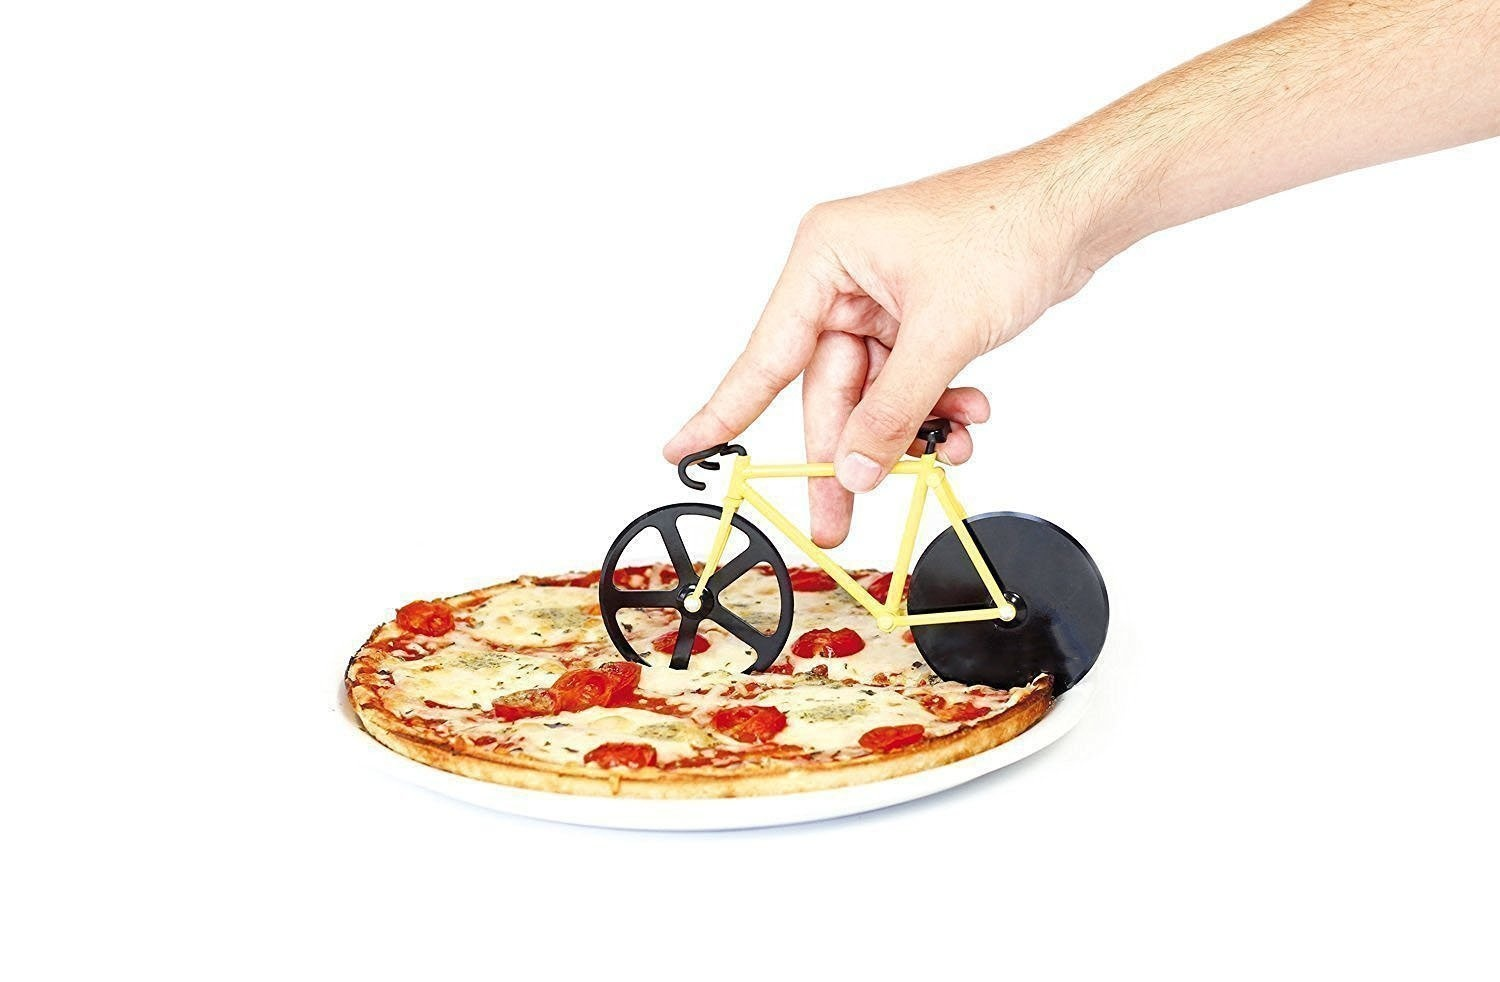 Cucina Vita Bicycle Pizza Cutter Bicycle Double Pizza Cutter Pizza Cutter Made Of Stainless Steel